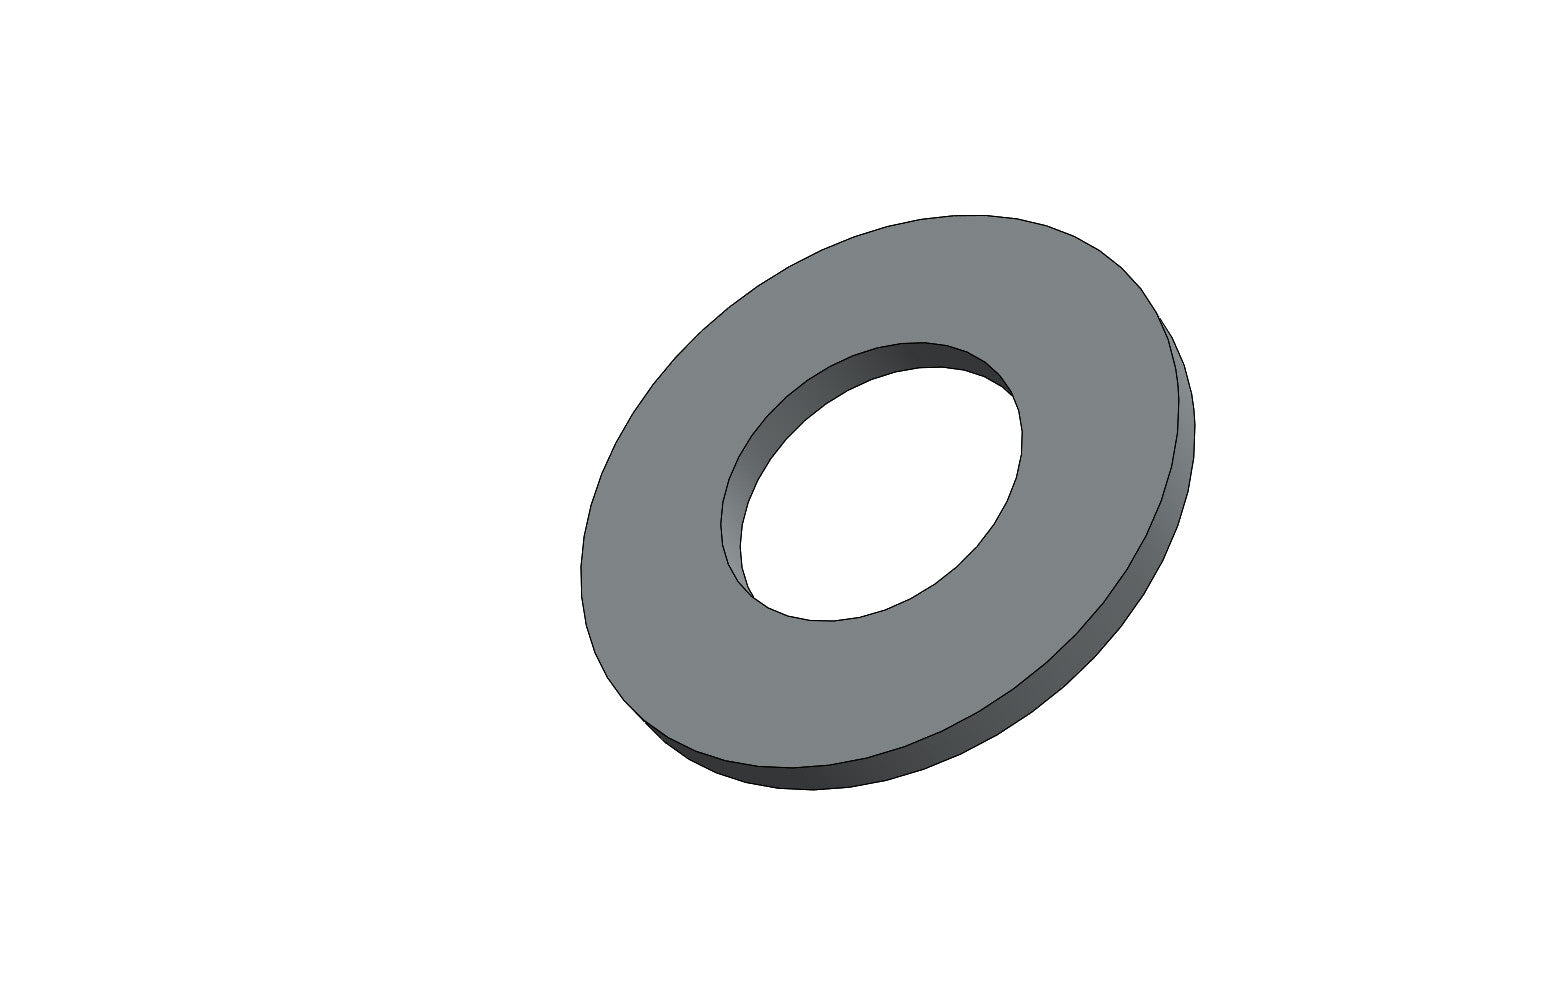 C00127A - FRICTION DISC - King CF100 Spare Part